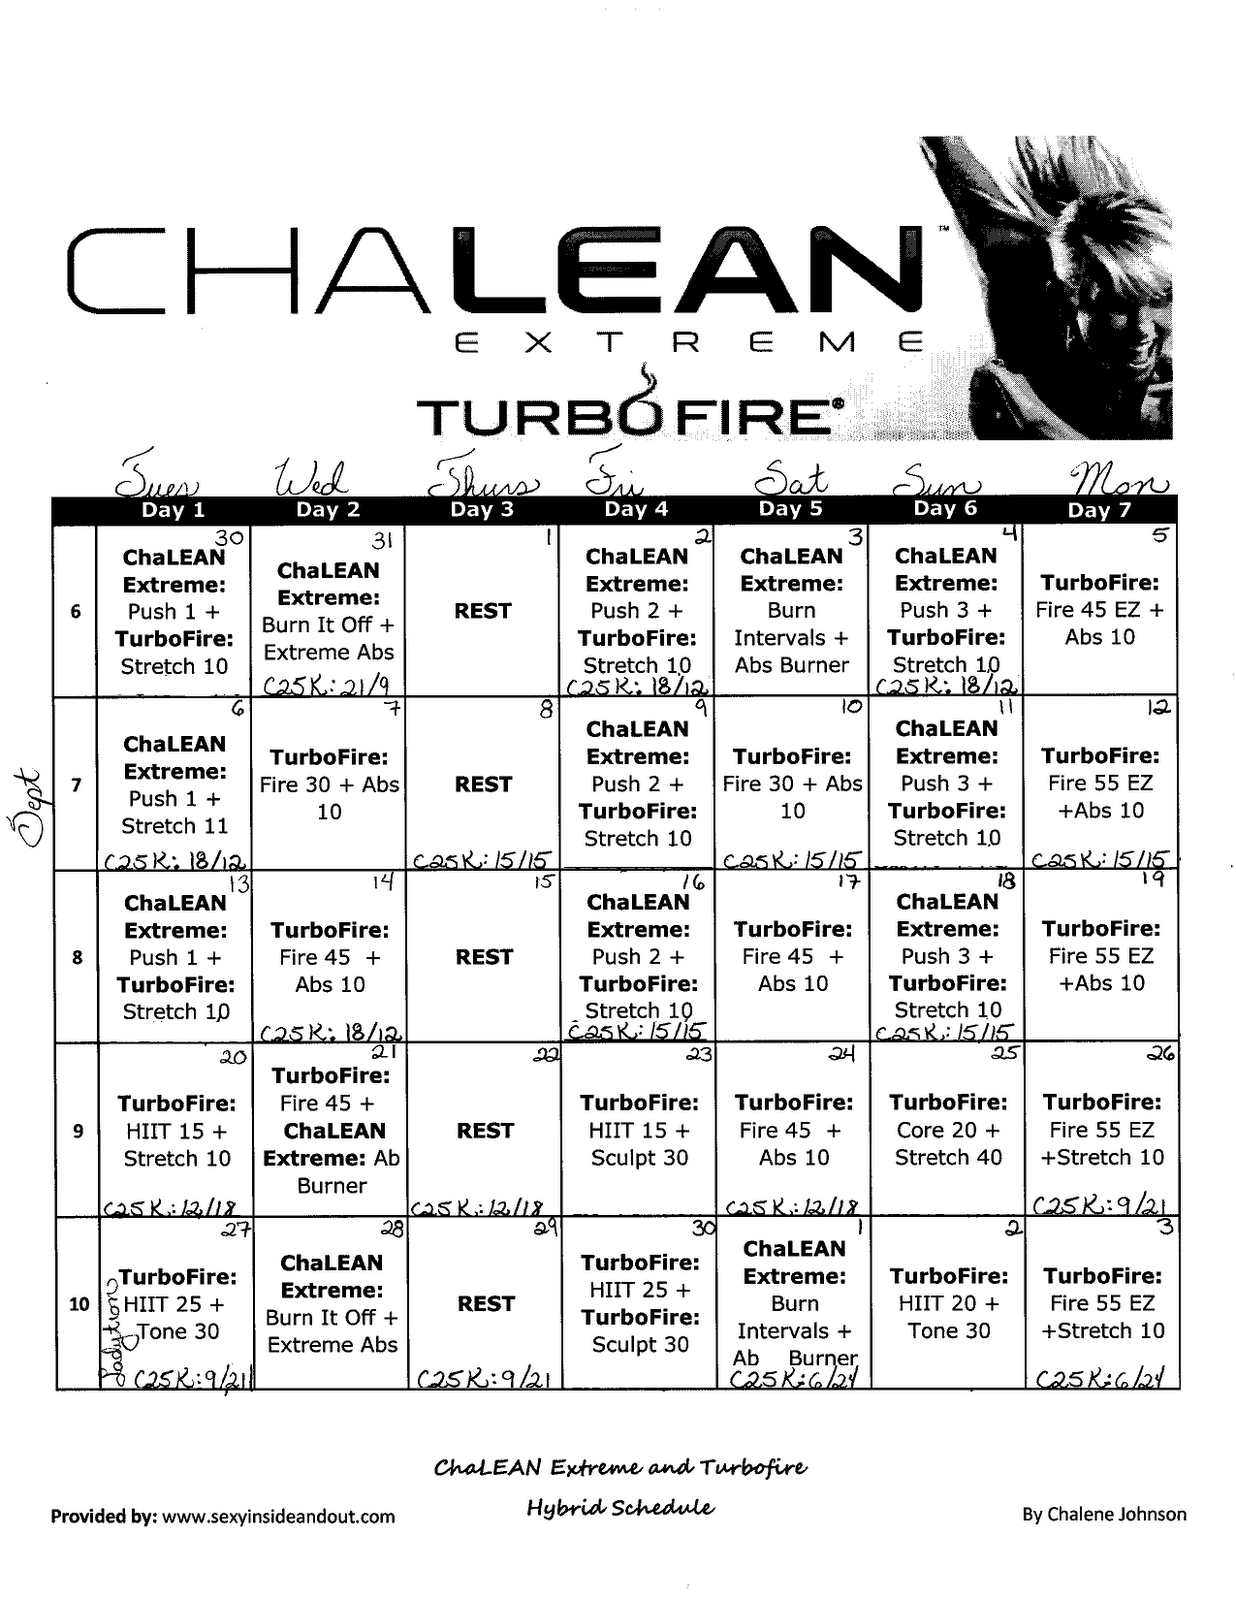 Worksheets Chalean Extreme Worksheets chalean extreme workout calendar mloovi blog here is my schedule for the turbofire hybrid which i also to in c25k